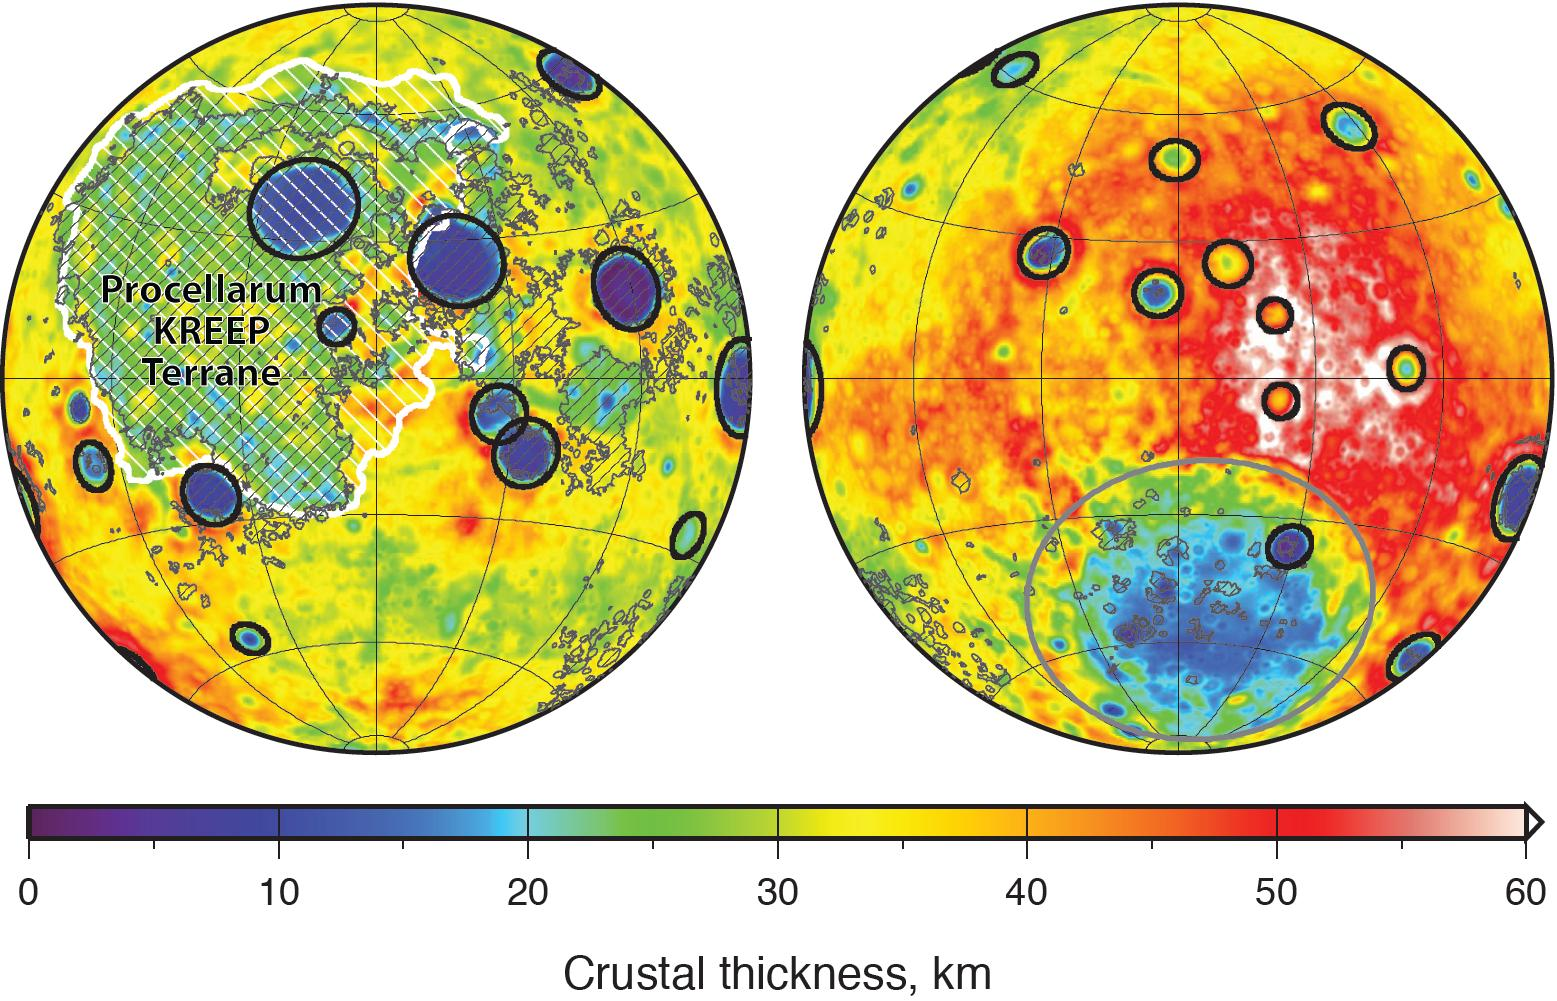 Heat map of crustal thickness of the moon